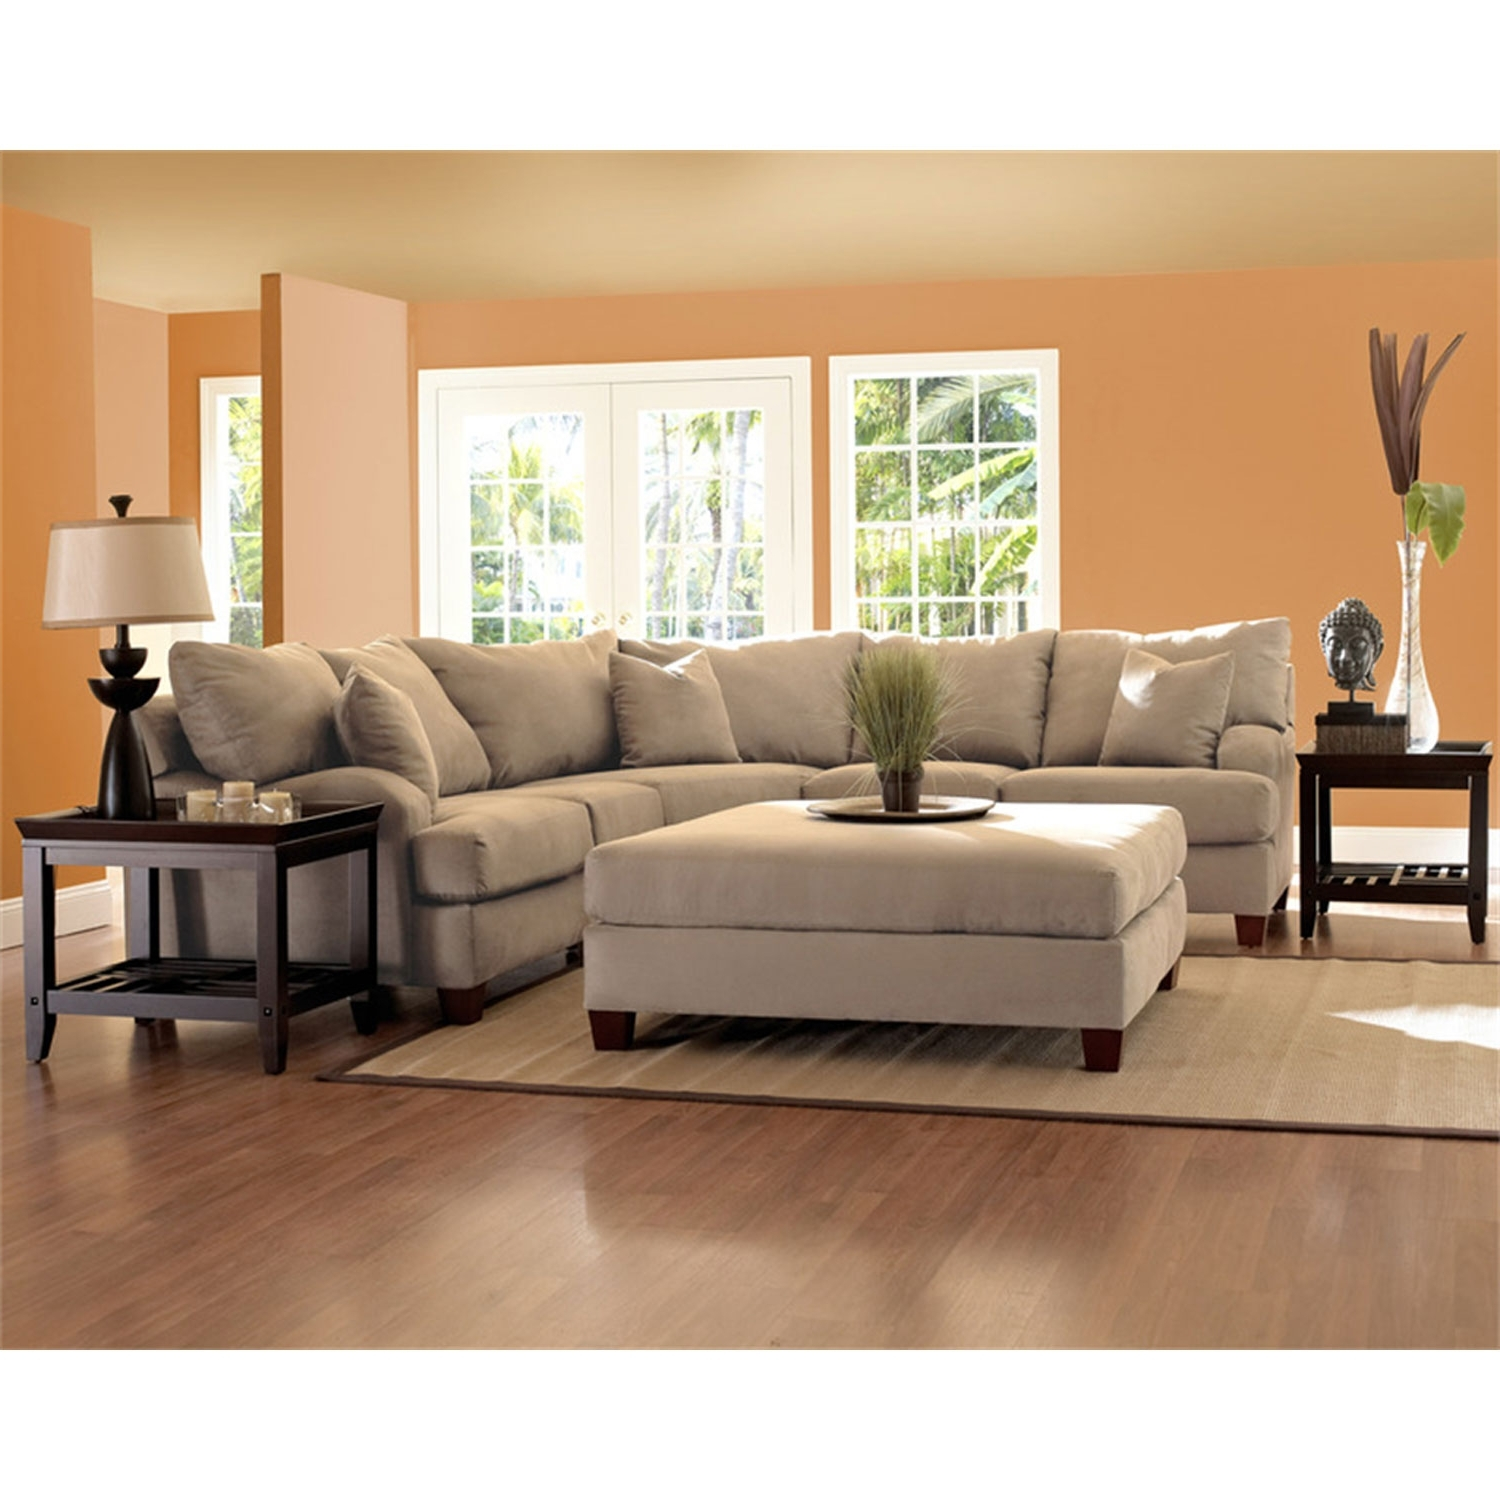 Canyon Beige Sectional Sectional Sofas Sofas & Sectionals Living For 2018 Beige Sectional Sofas (View 12 of 20)